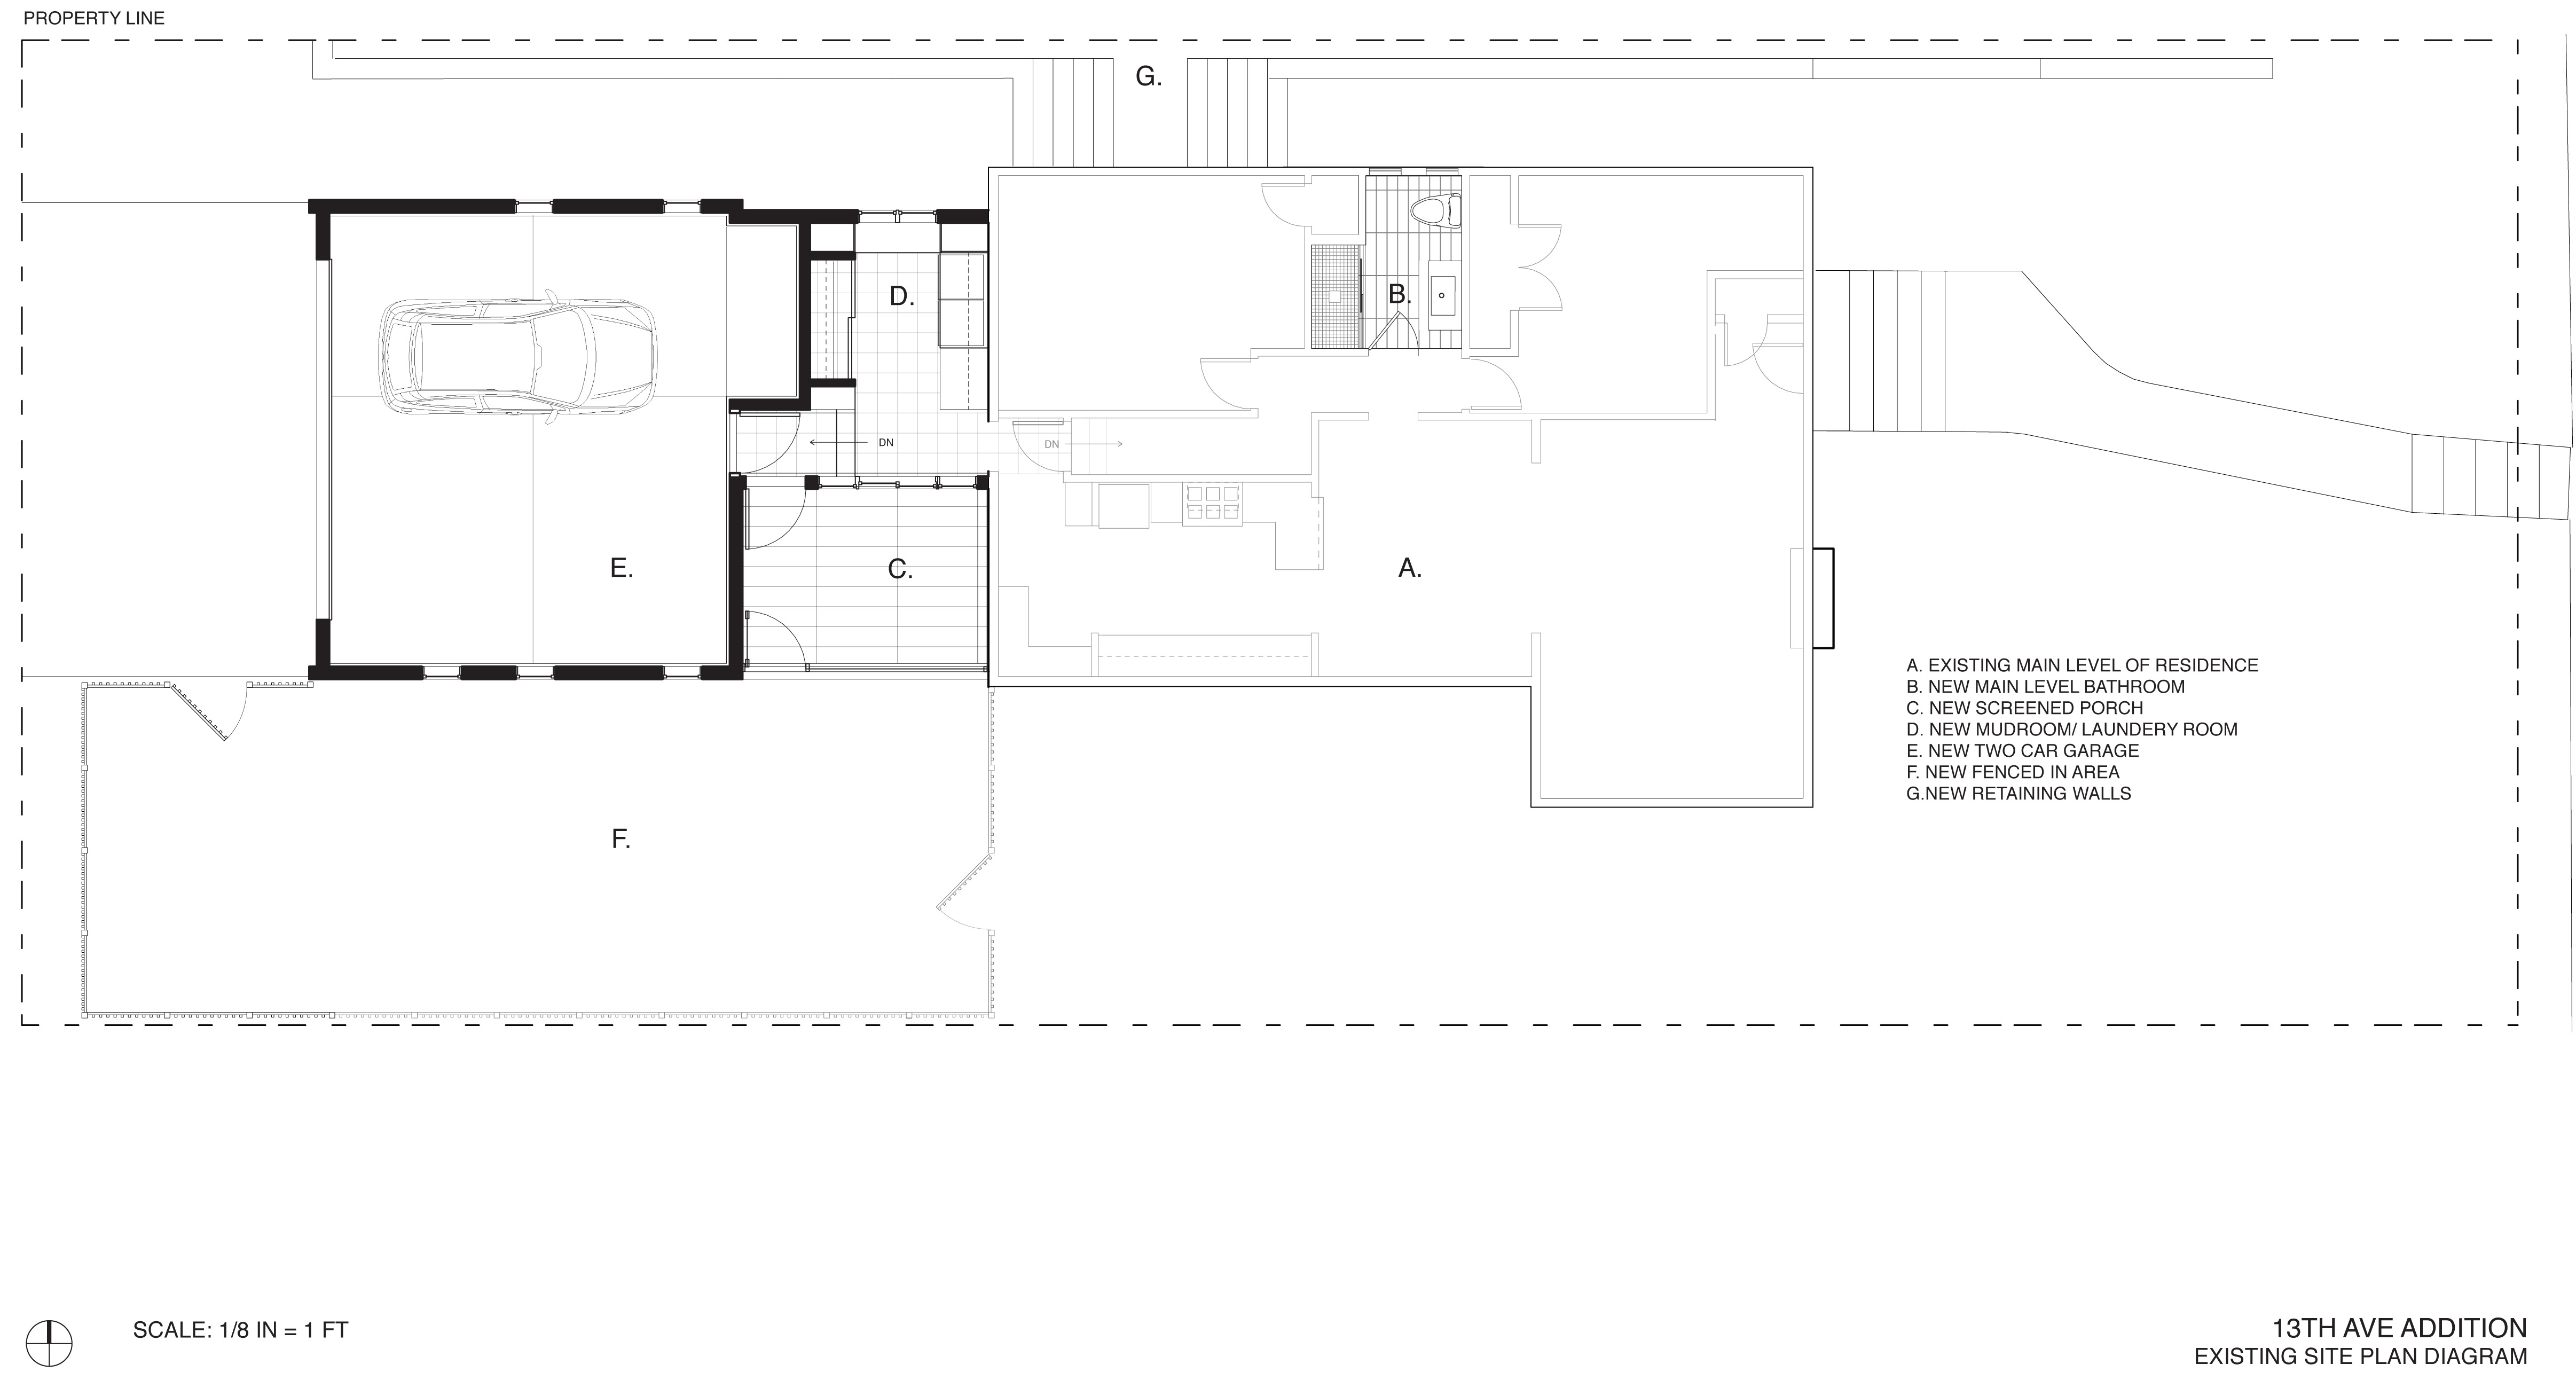 ROMA+Awards_Redstone+Builders_Addition+and+Remodel+Plans.jpg